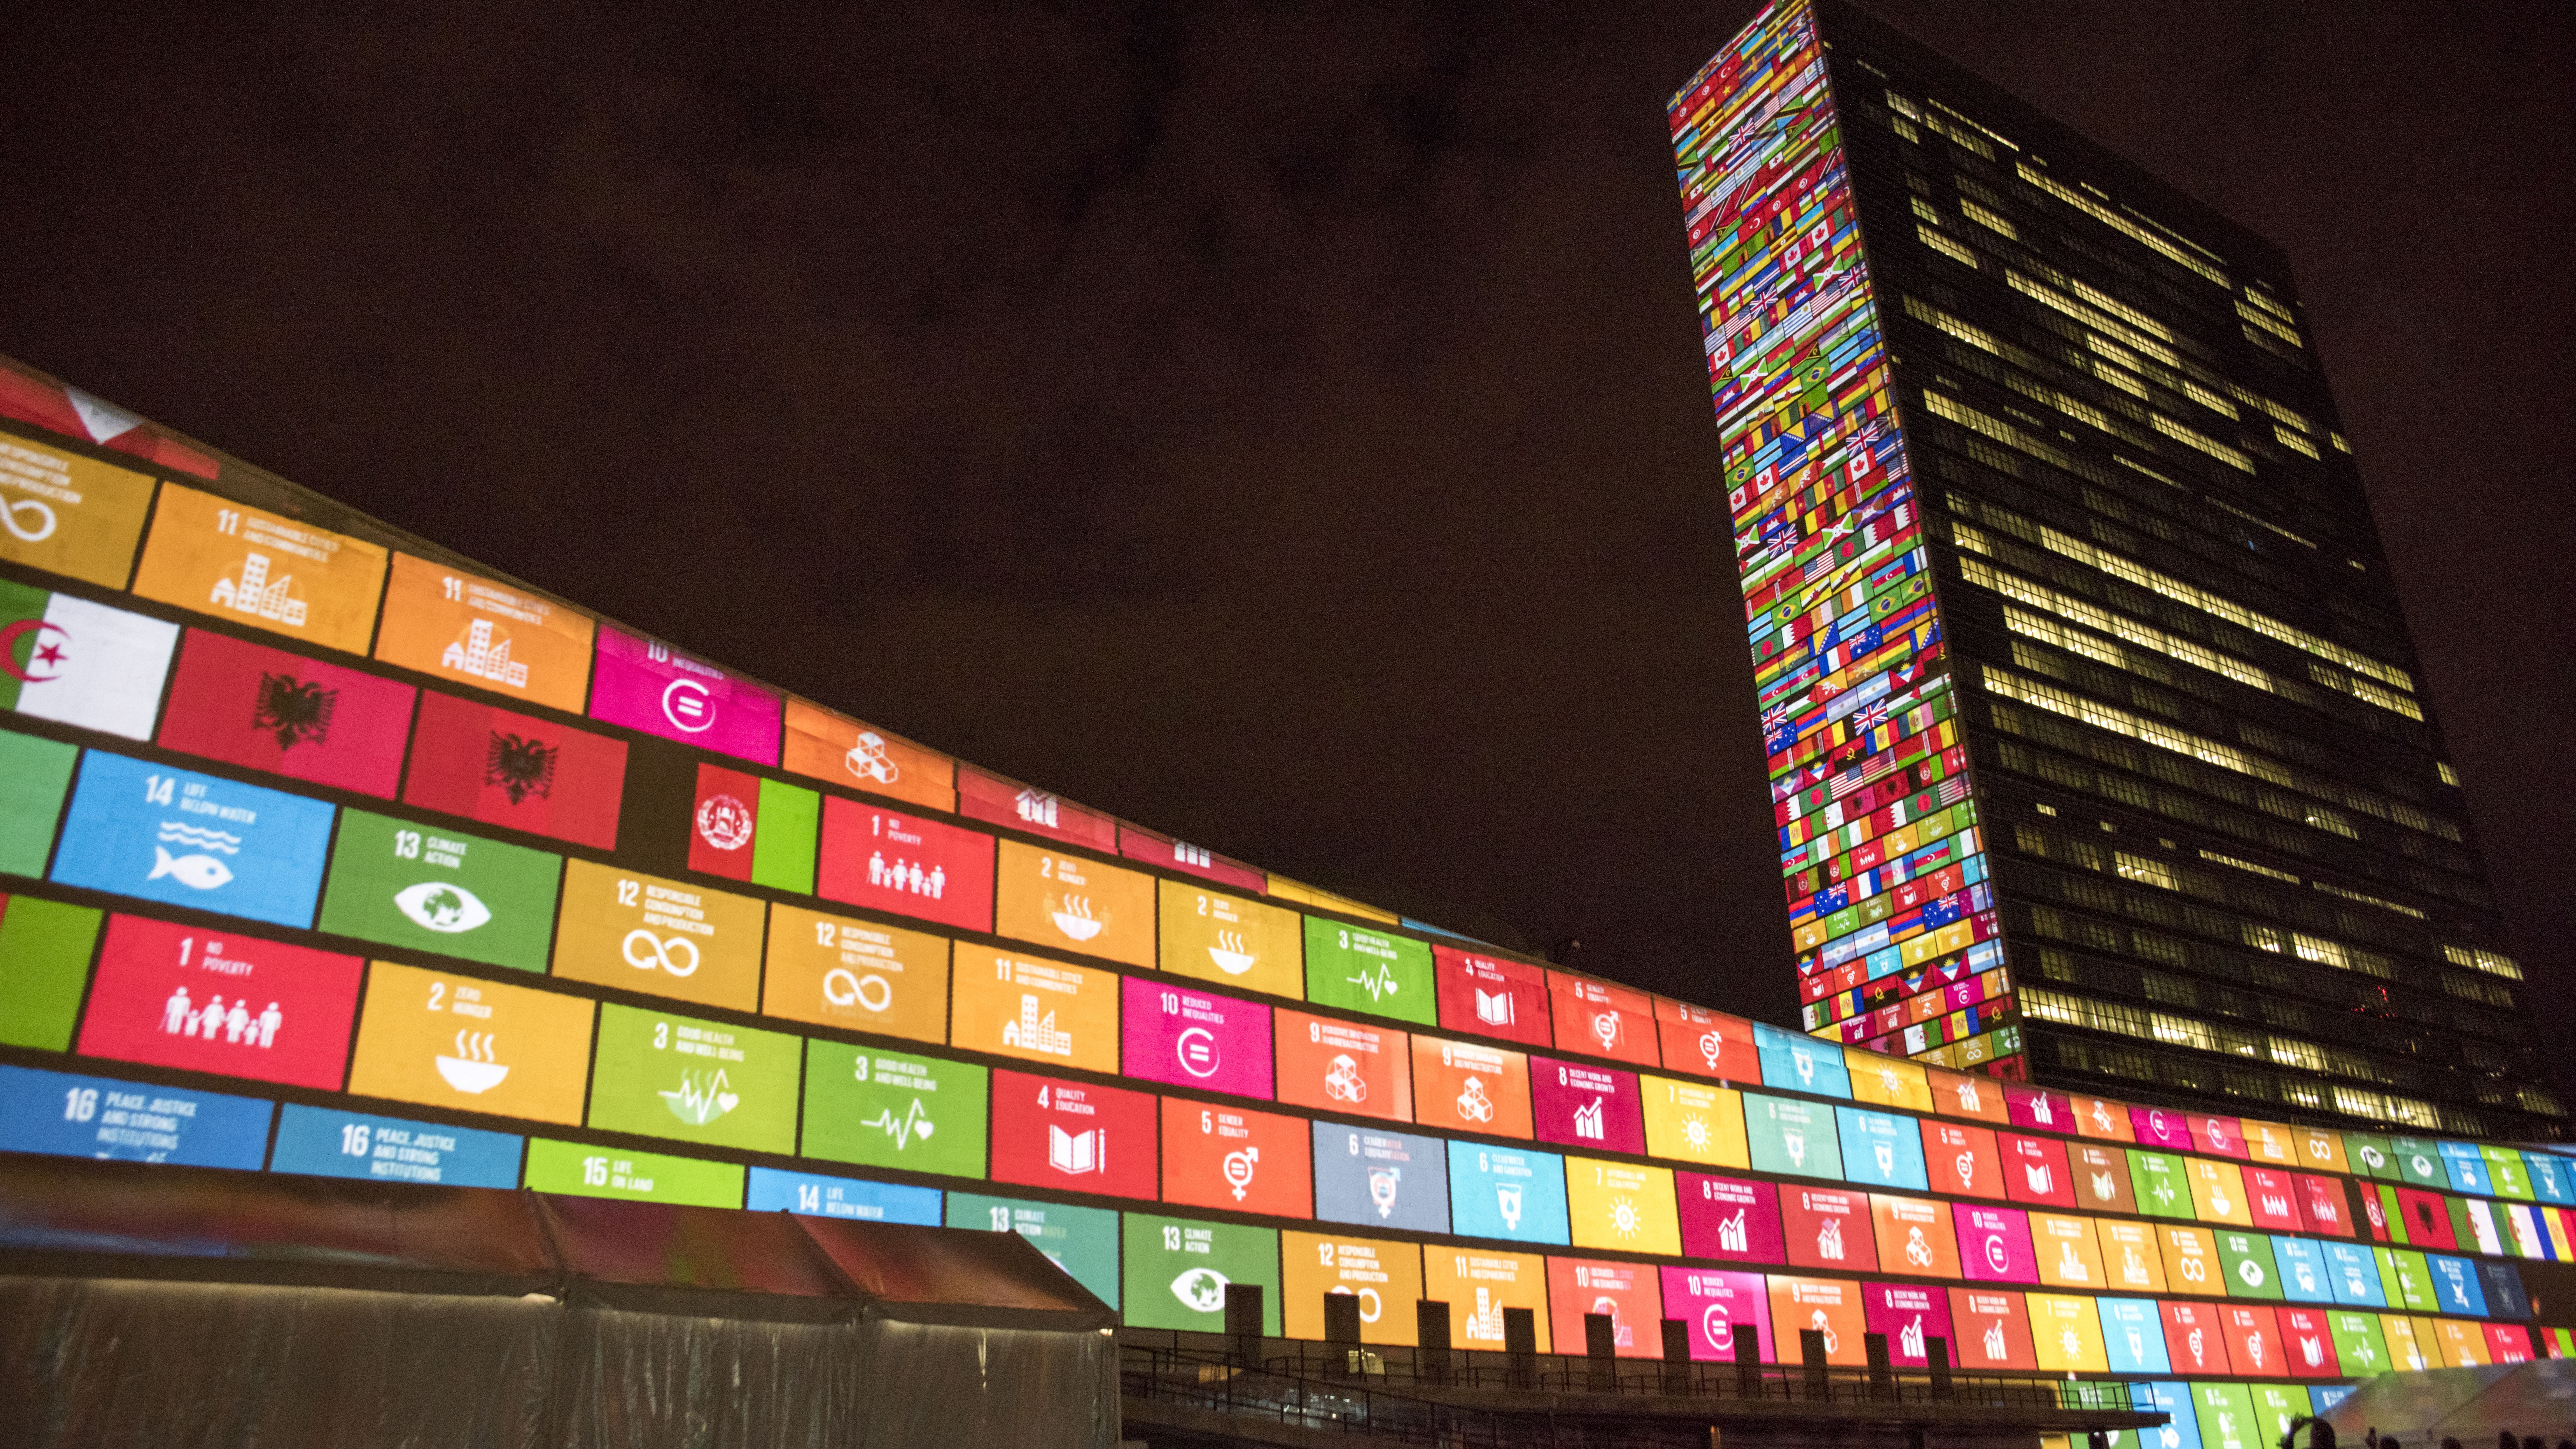 Ahead of the United Nations Sustainable Development Summit from 25-27 September, and to mark the 70th anniversary of the United Nations, a 10-minute film introducing the Sustainable Development Goals is projected onto the UN Headquarters, north façade of the Secretariat building, and west façade of the General Assembly building. The projection brings to life each of the 17 Goals, to raise awareness about the 2030 Agenda for Sustainable Development.